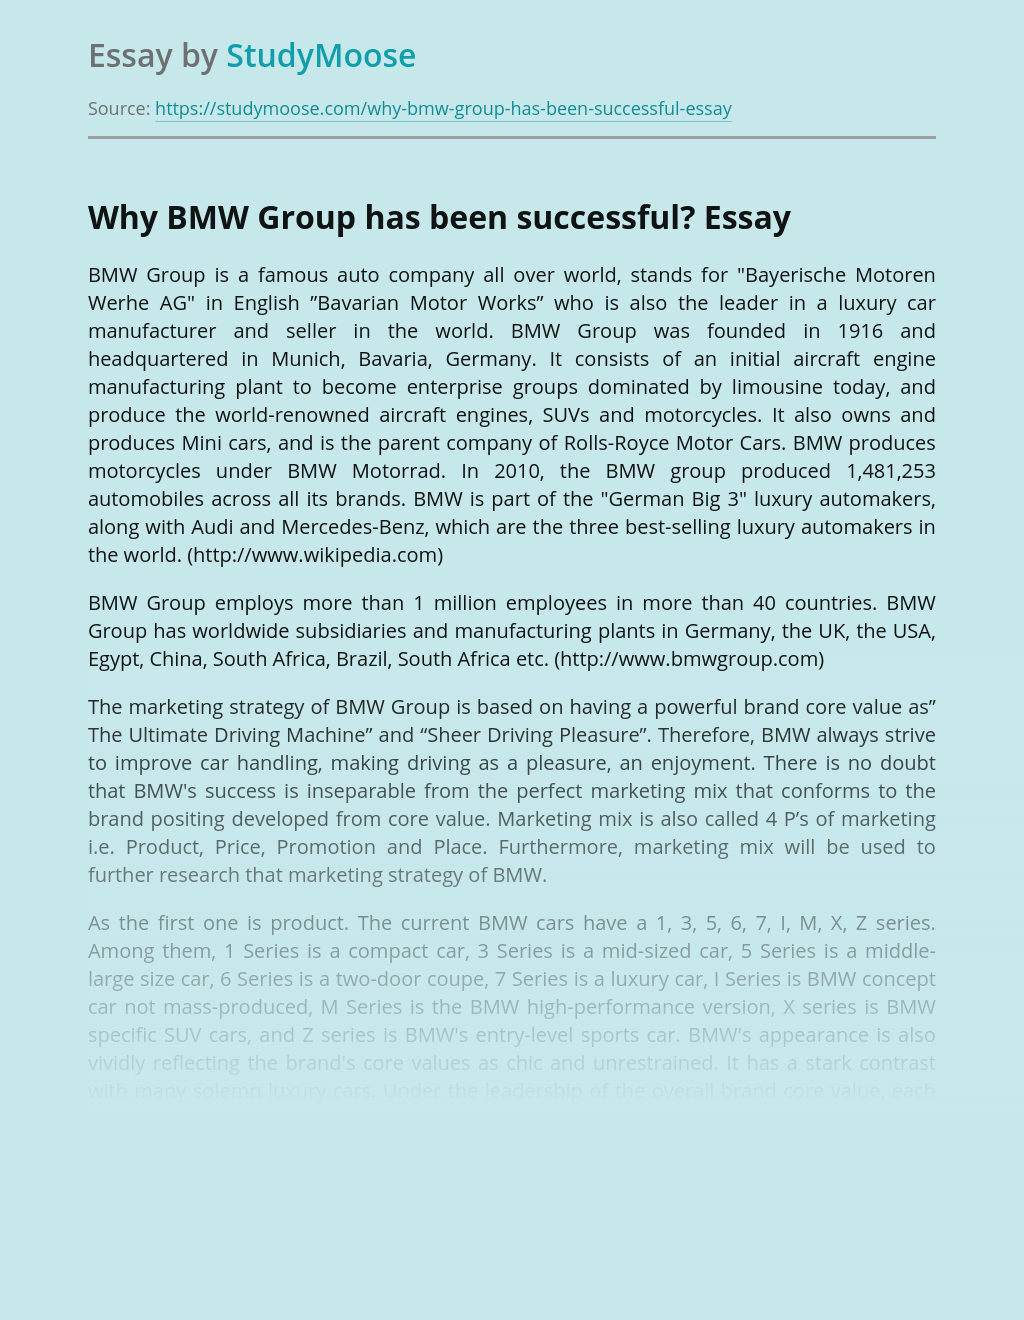 Why BMW Group has been successful?